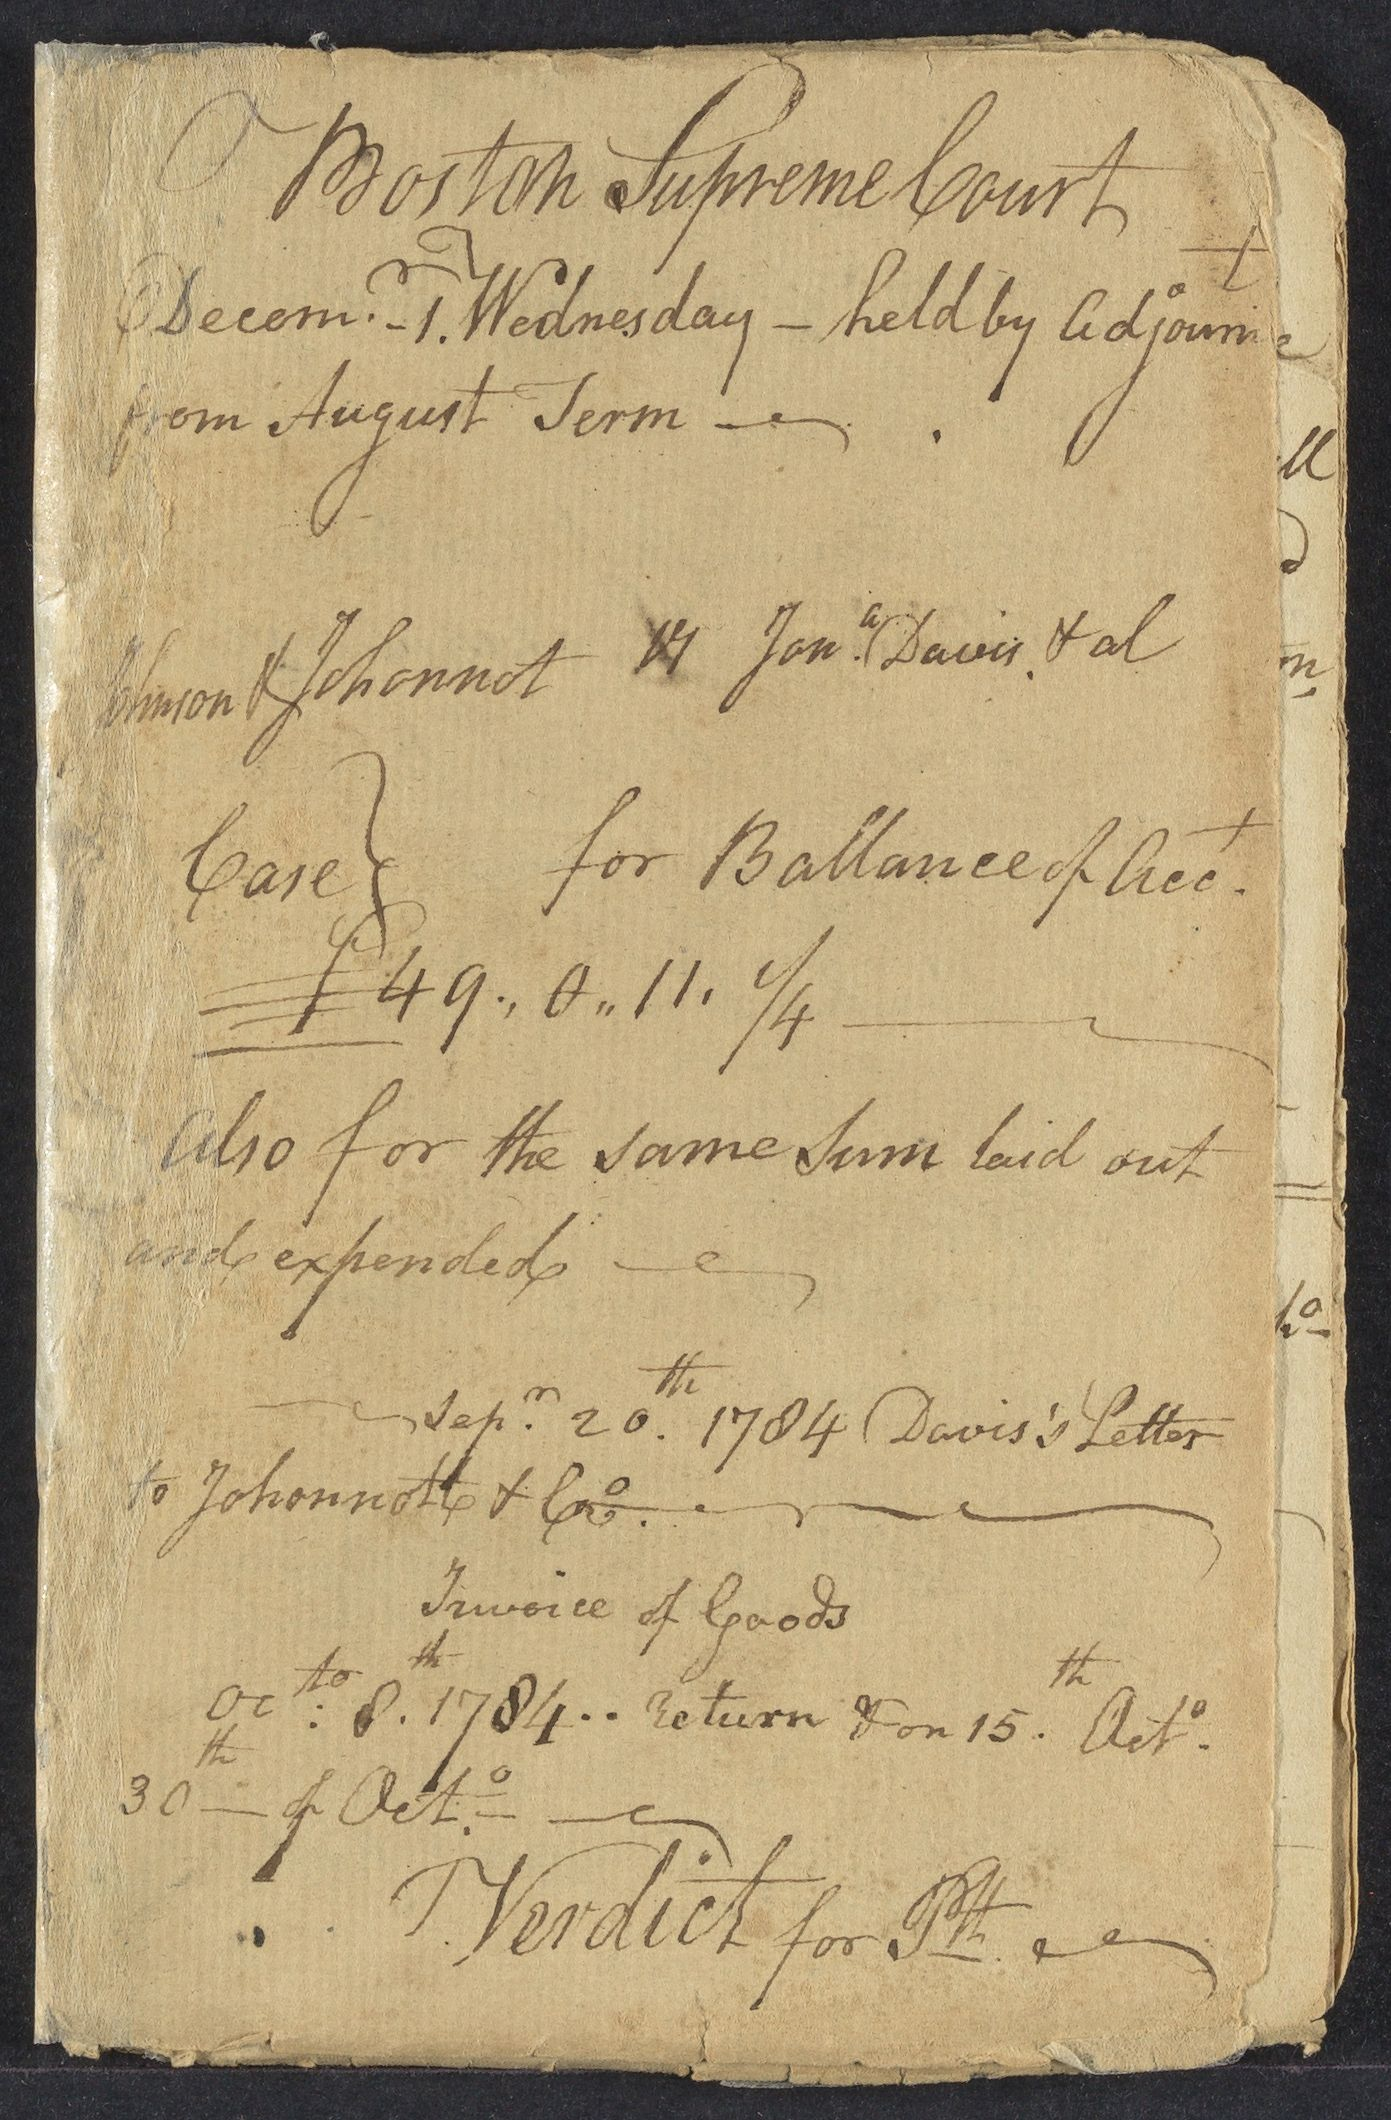 Notes on cases in Boston, 1784-1790